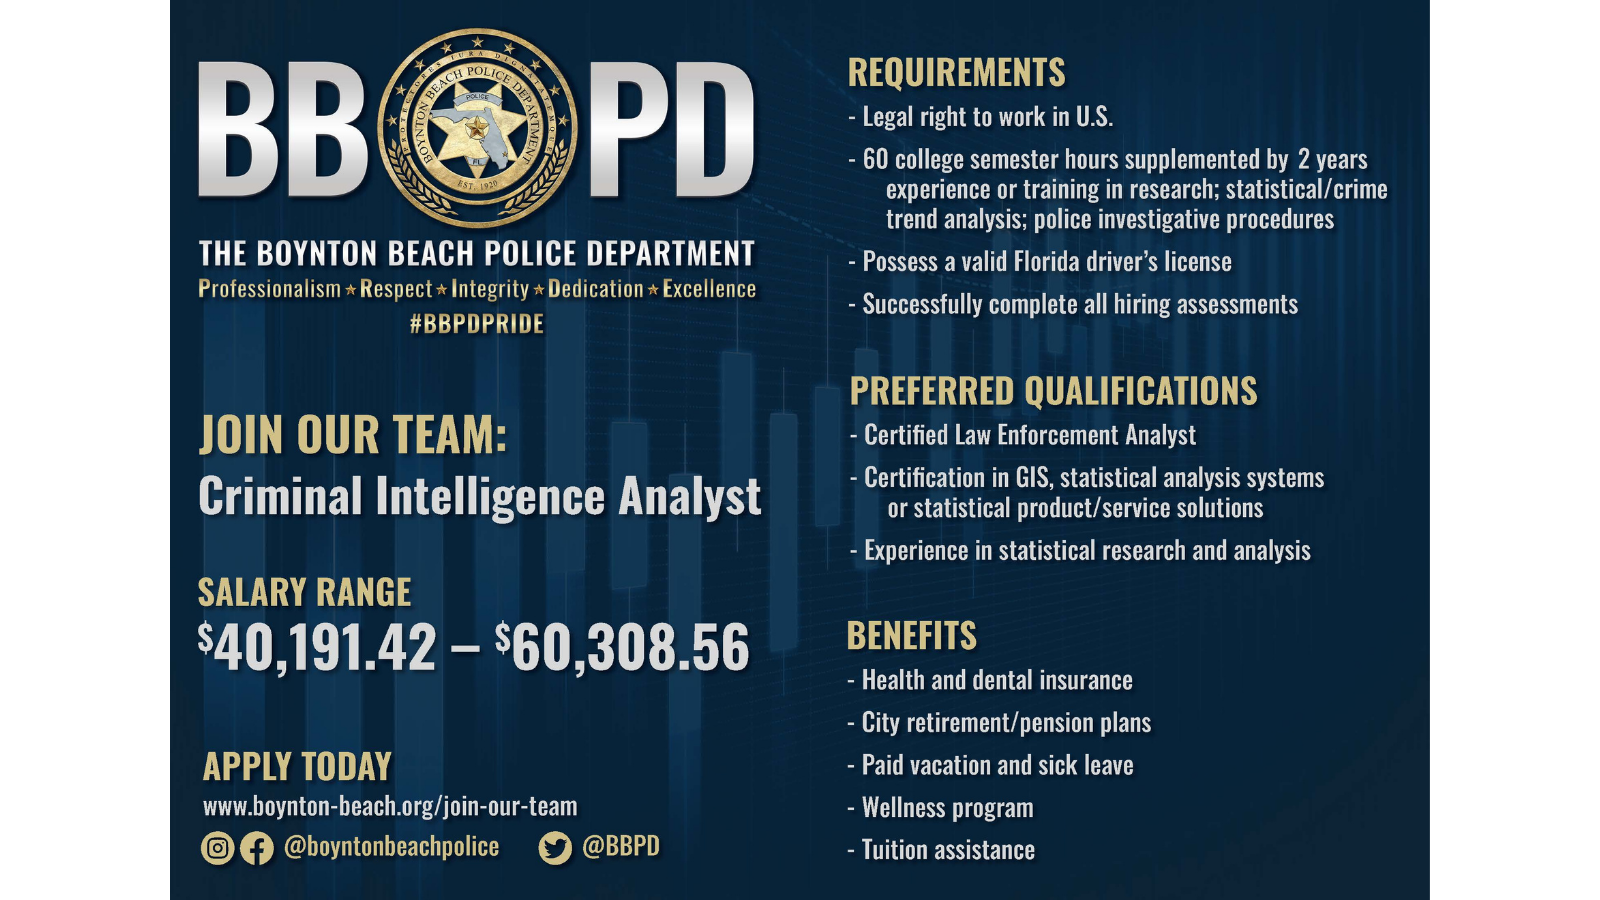 Announcement of job posting for criminal intelligence analyst.